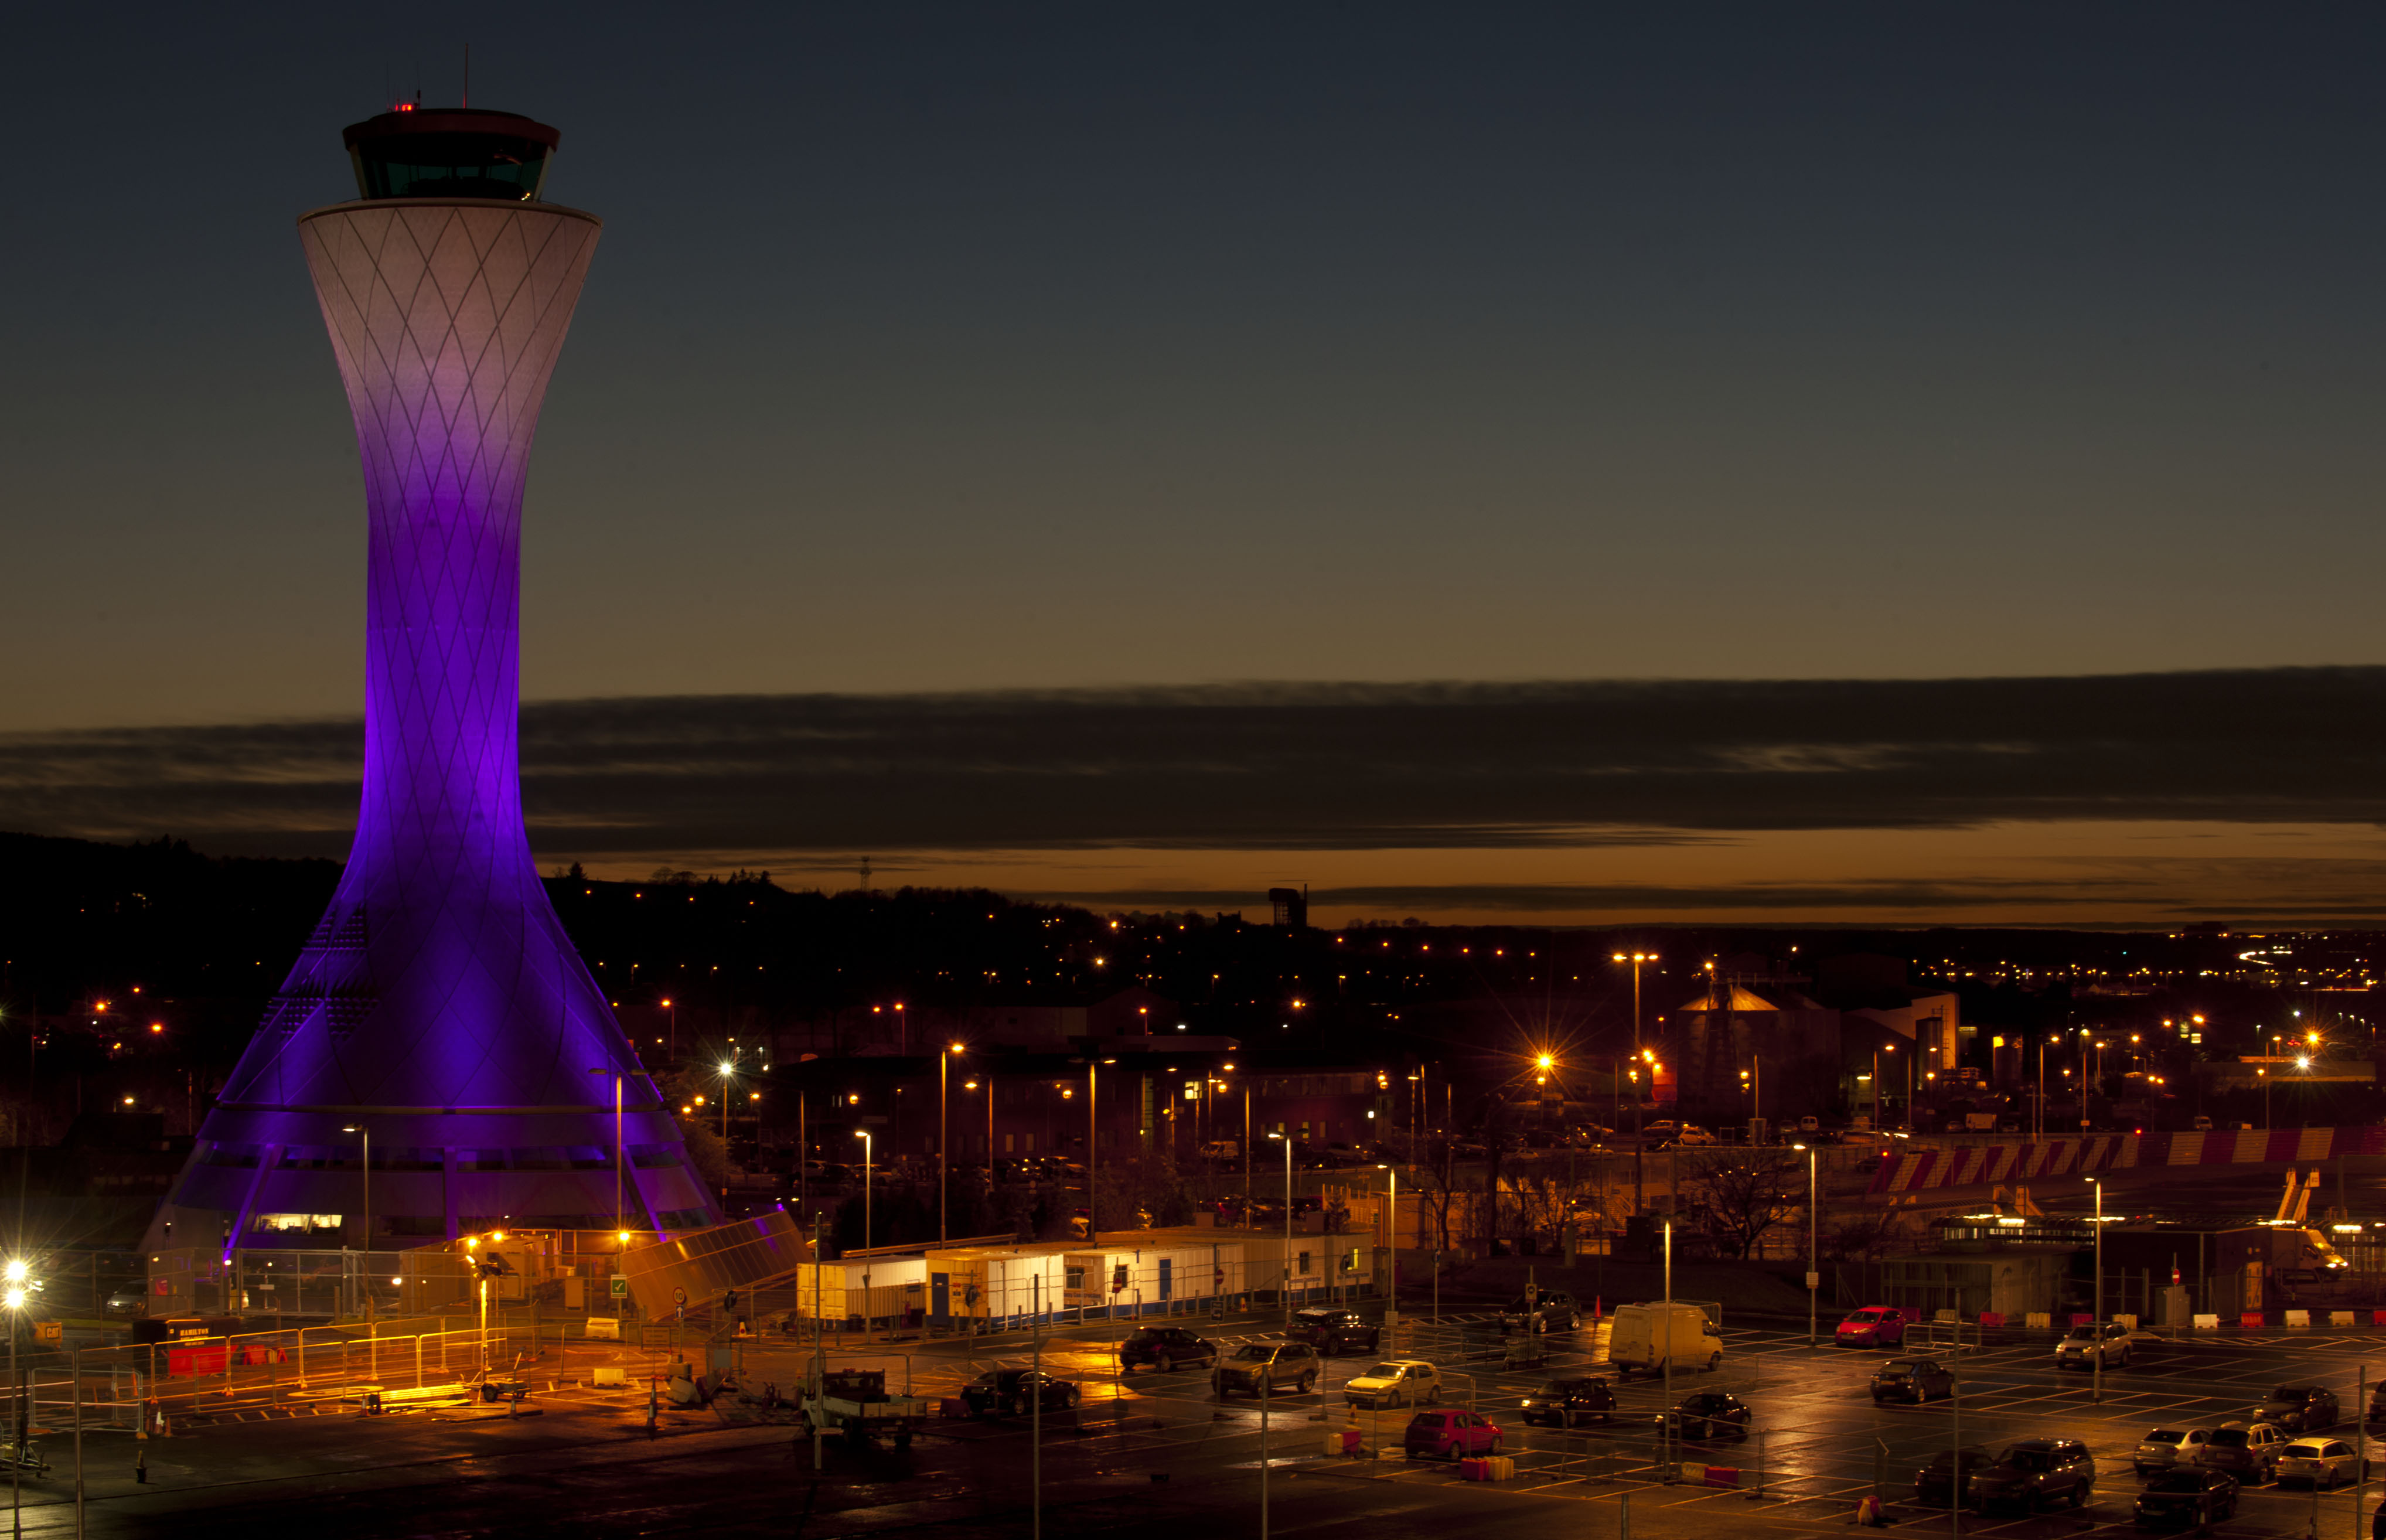 EDINBURGH AIRPORT PINK TOWER